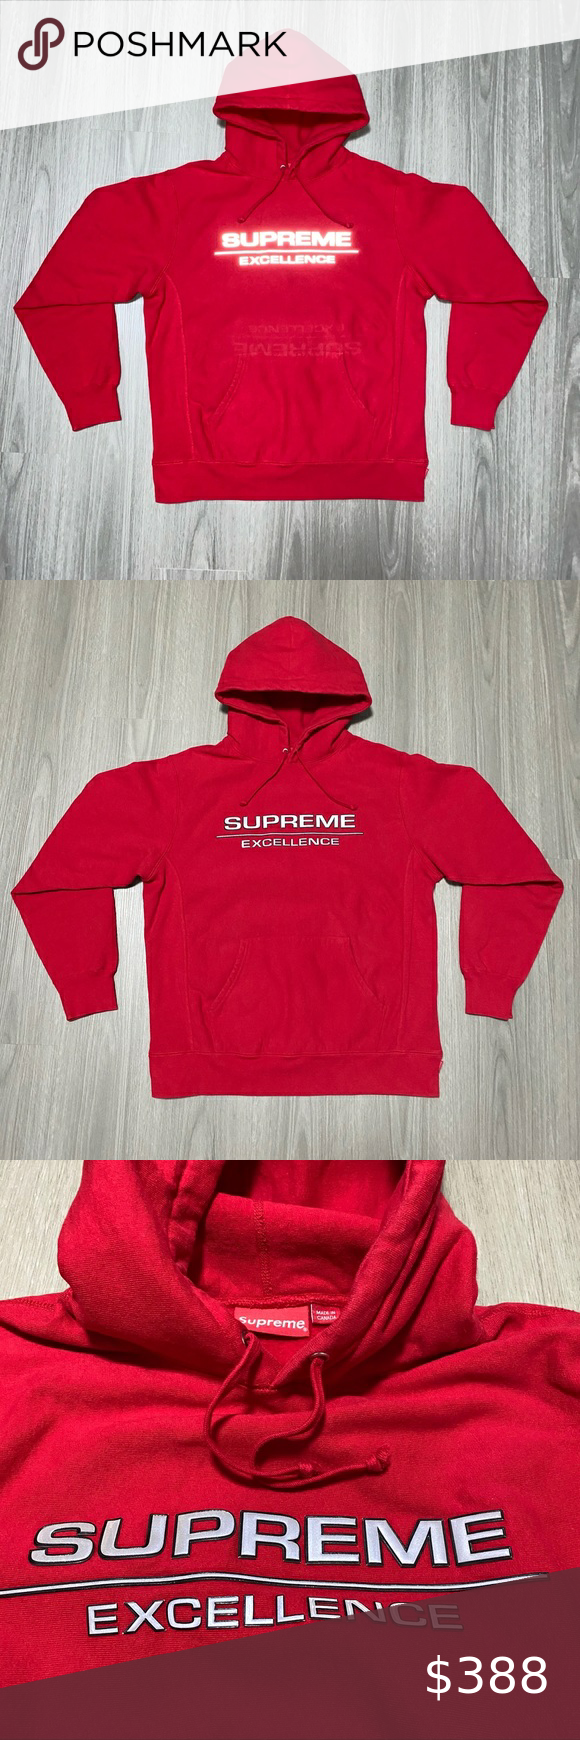 Supreme Reflective Excellence Hooded Sweatshirt Supreme Reflective Excellence Hooded Sweatshirt Red 100 Authe Sweatshirts Hooded Sweatshirts Sweatshirt Shirt [ 1740 x 580 Pixel ]